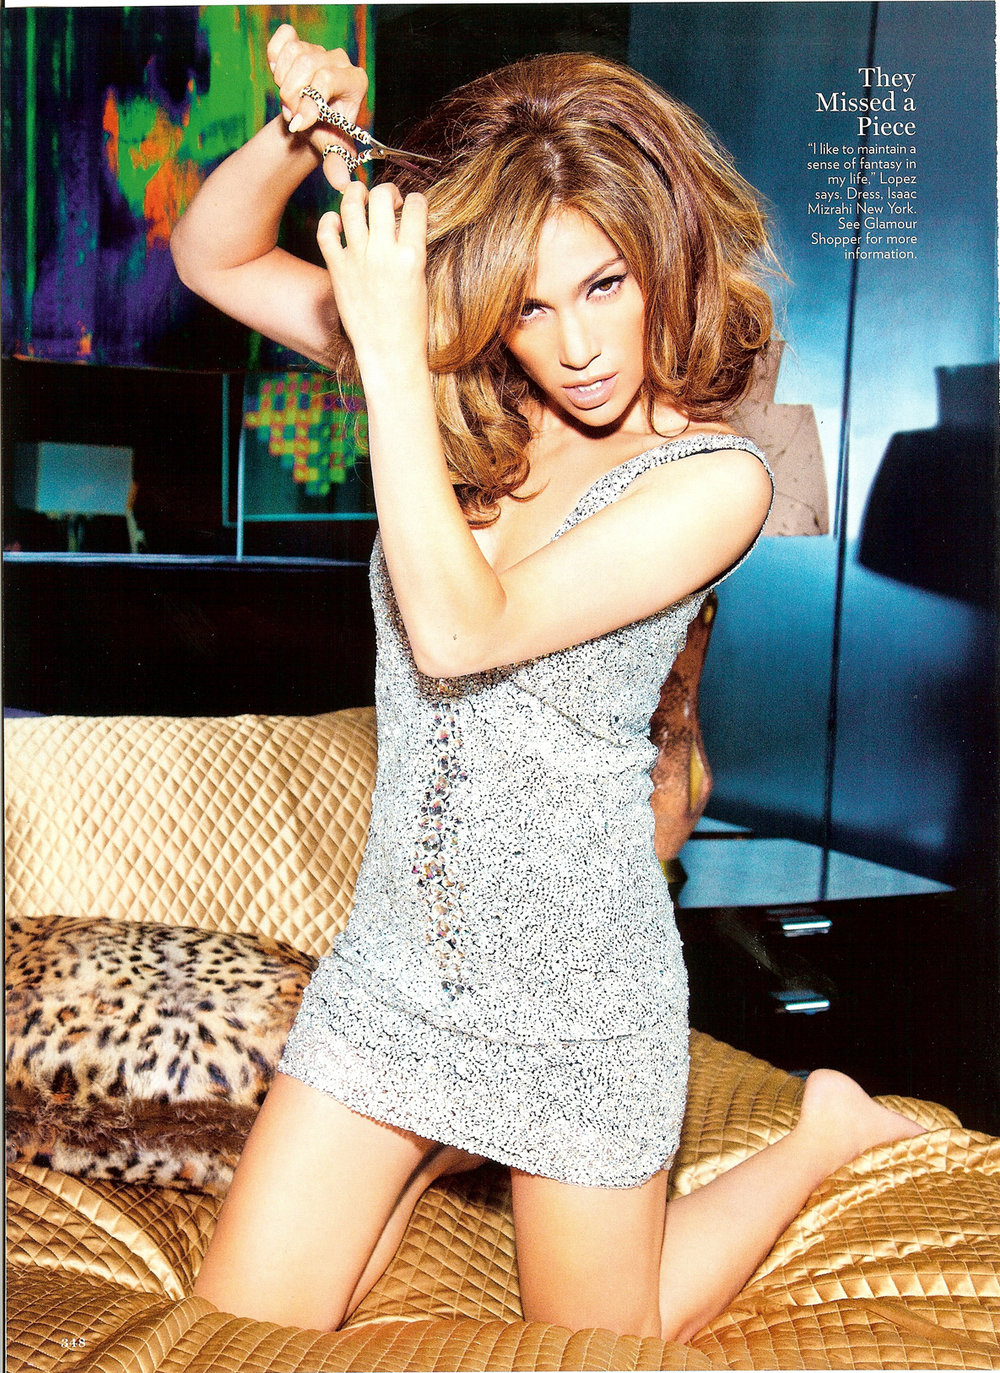 Glamour - August 2010